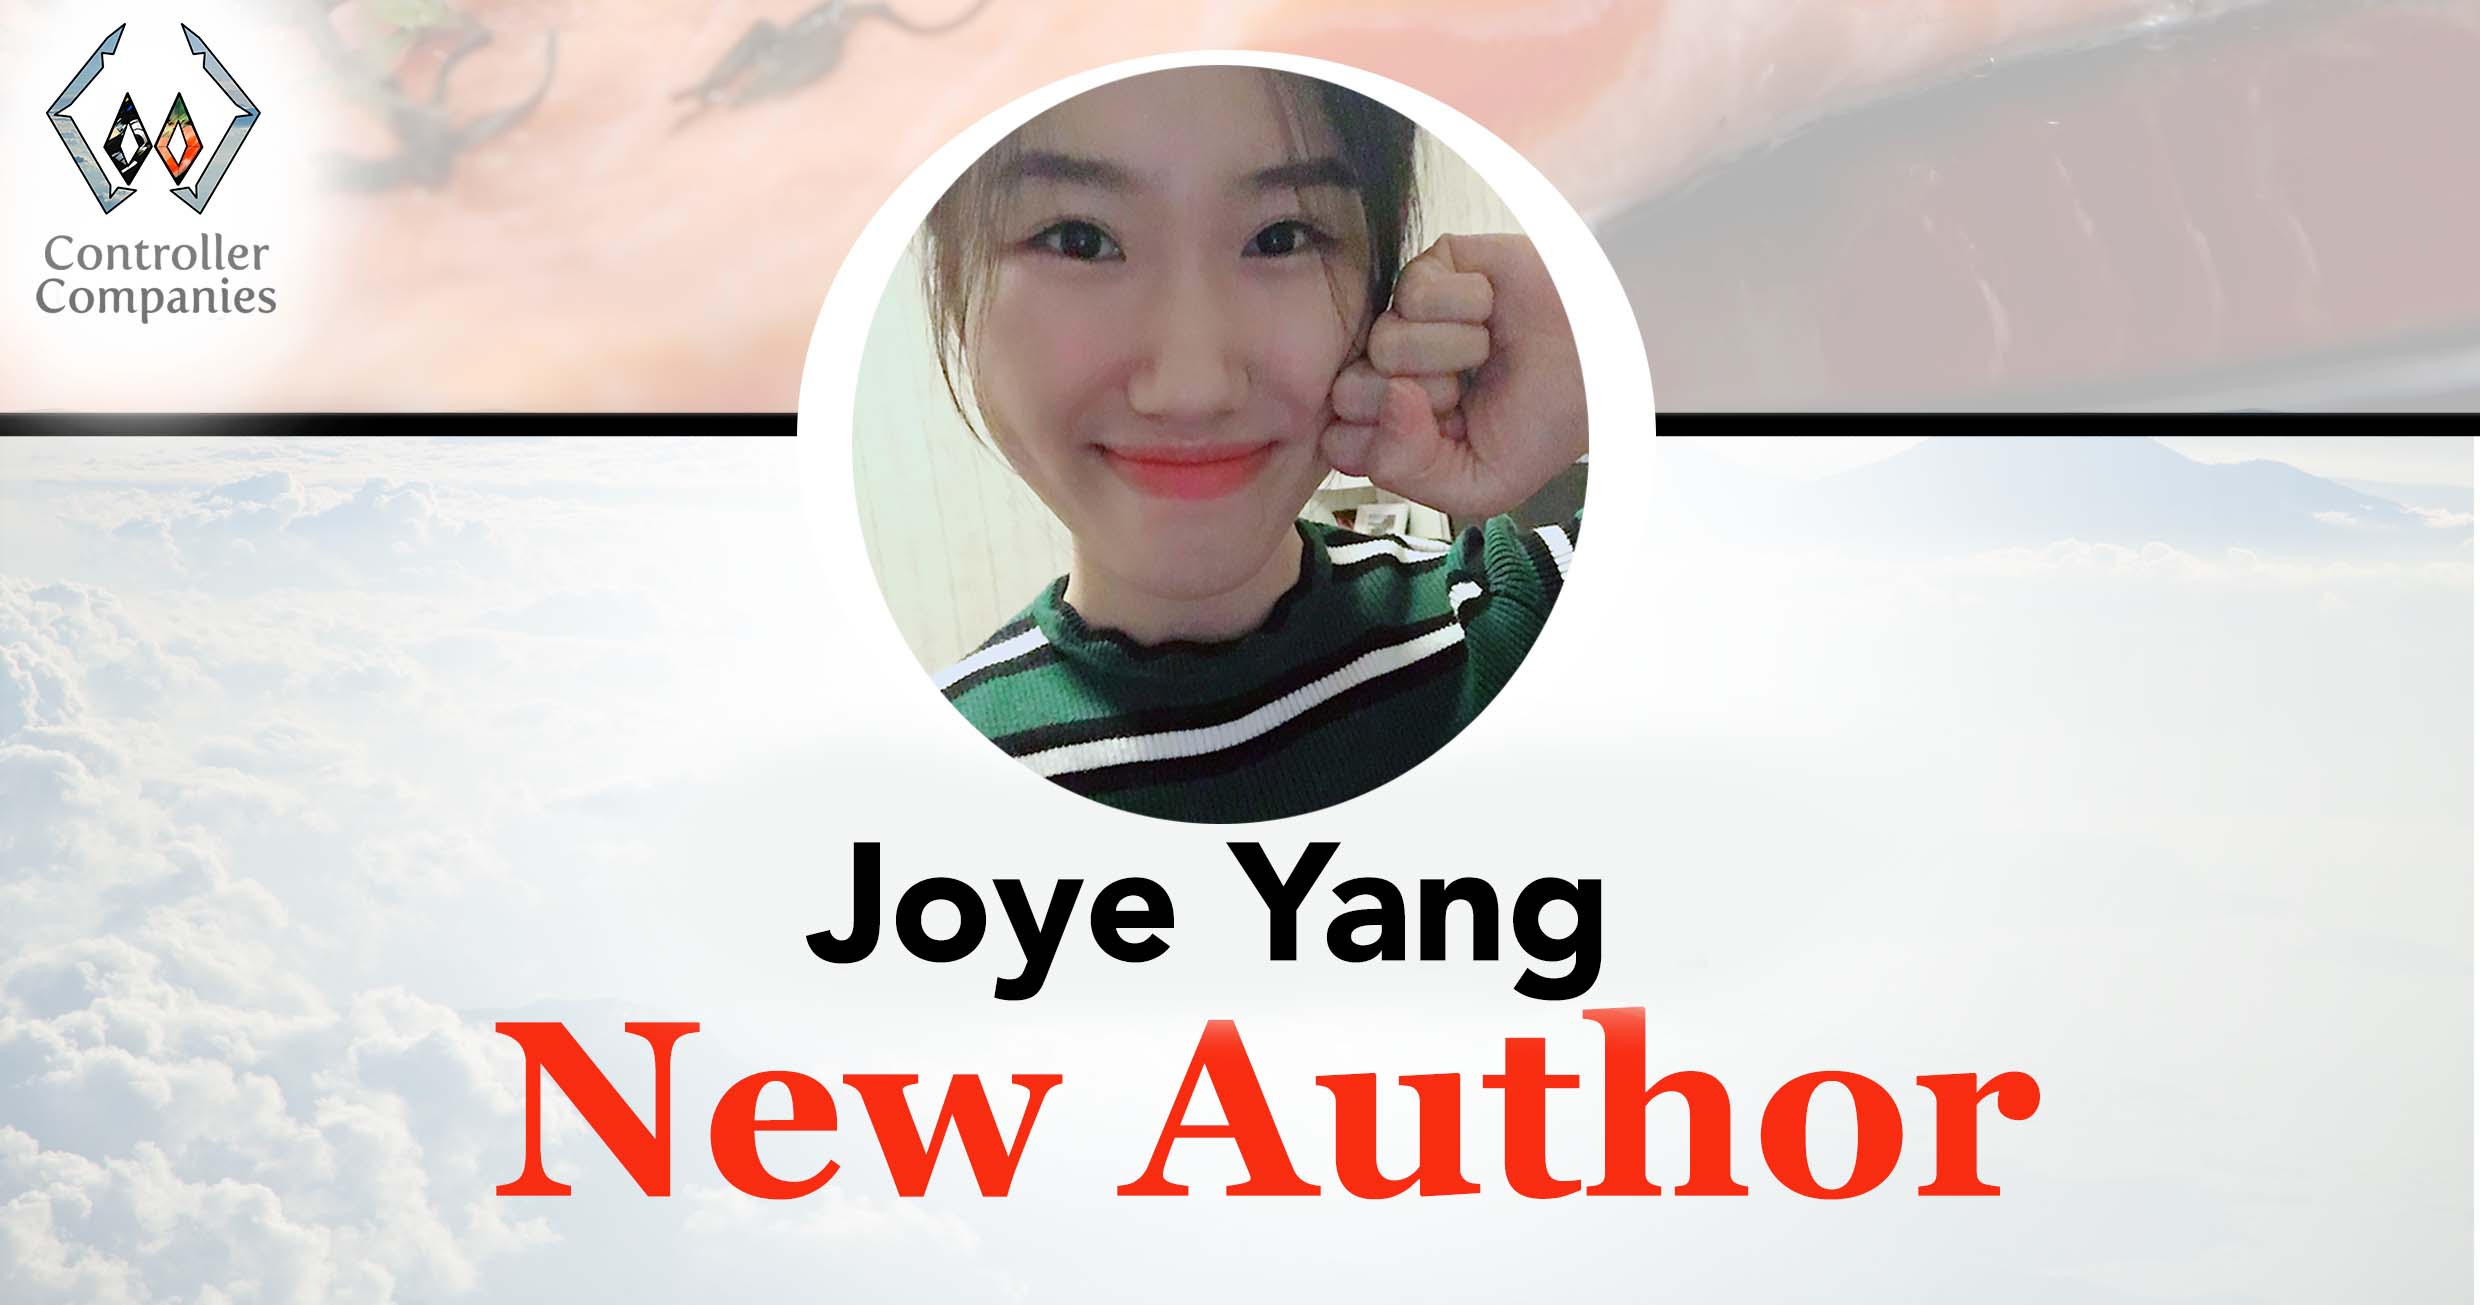 joye yang new author announcement controller companies